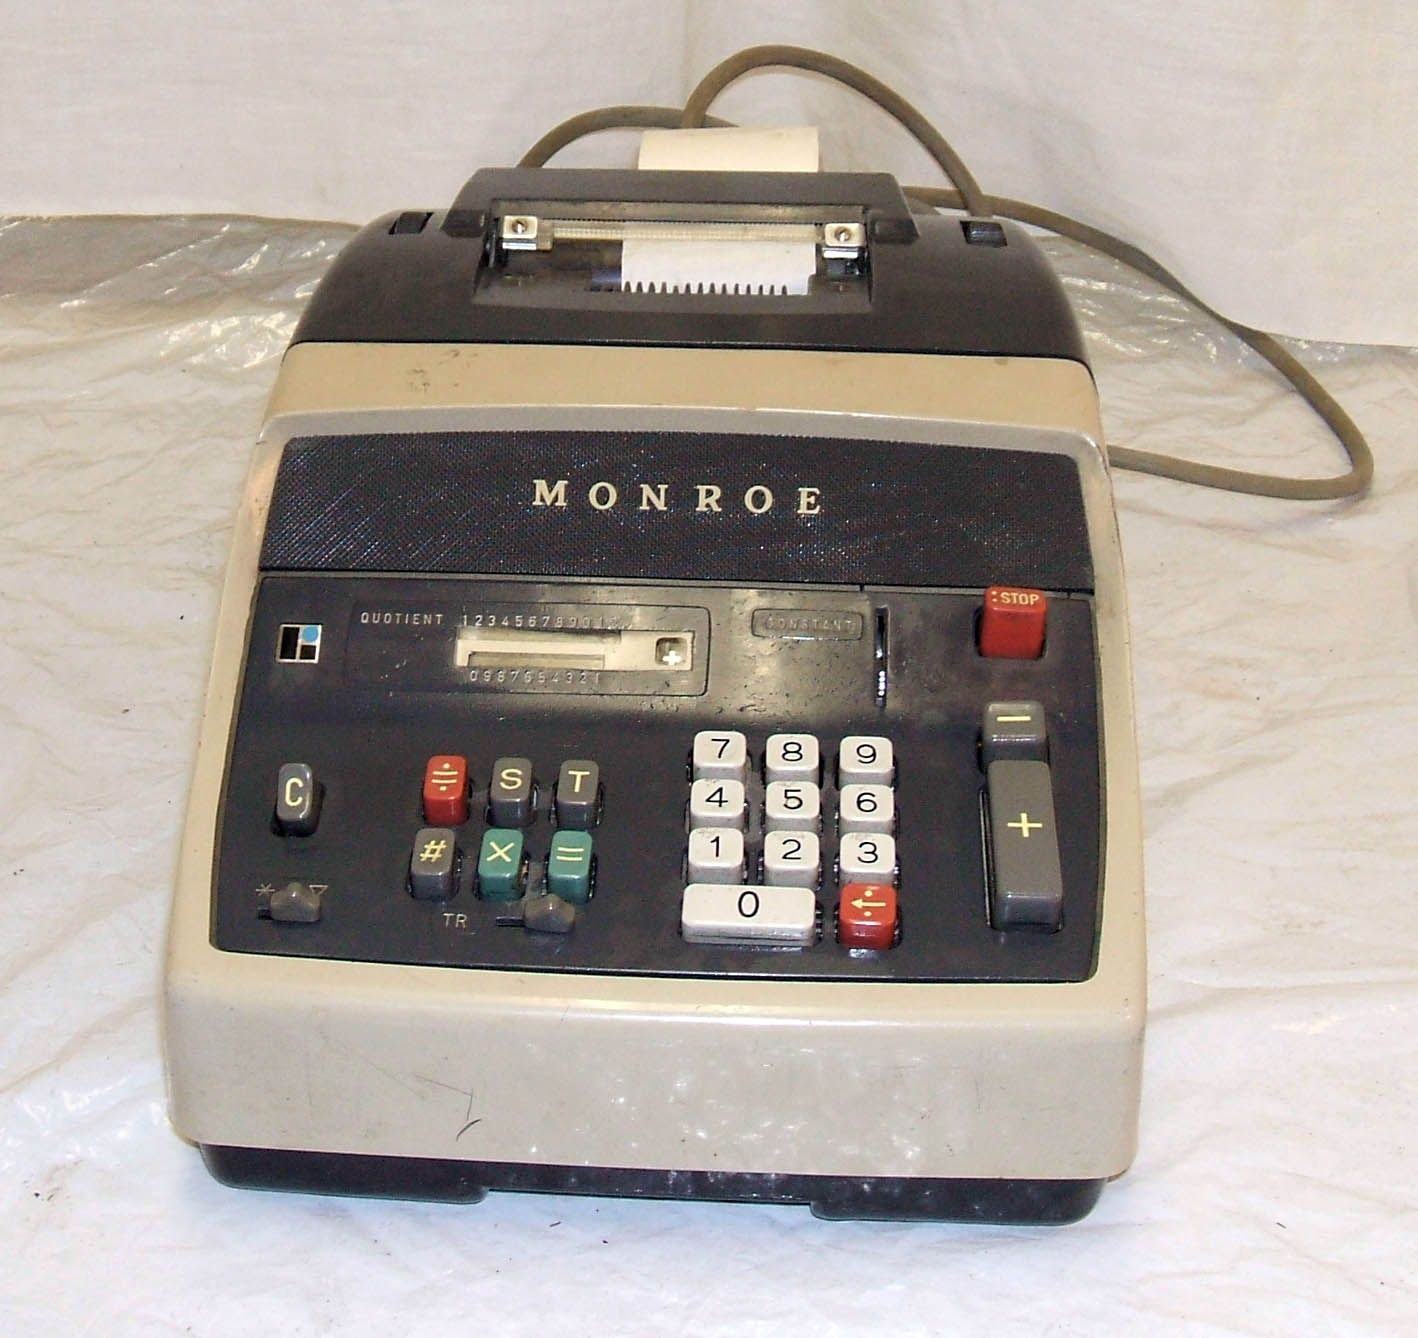 Monroe 10 Key Adding Machine Electronic Products 10 Things Office Equipment